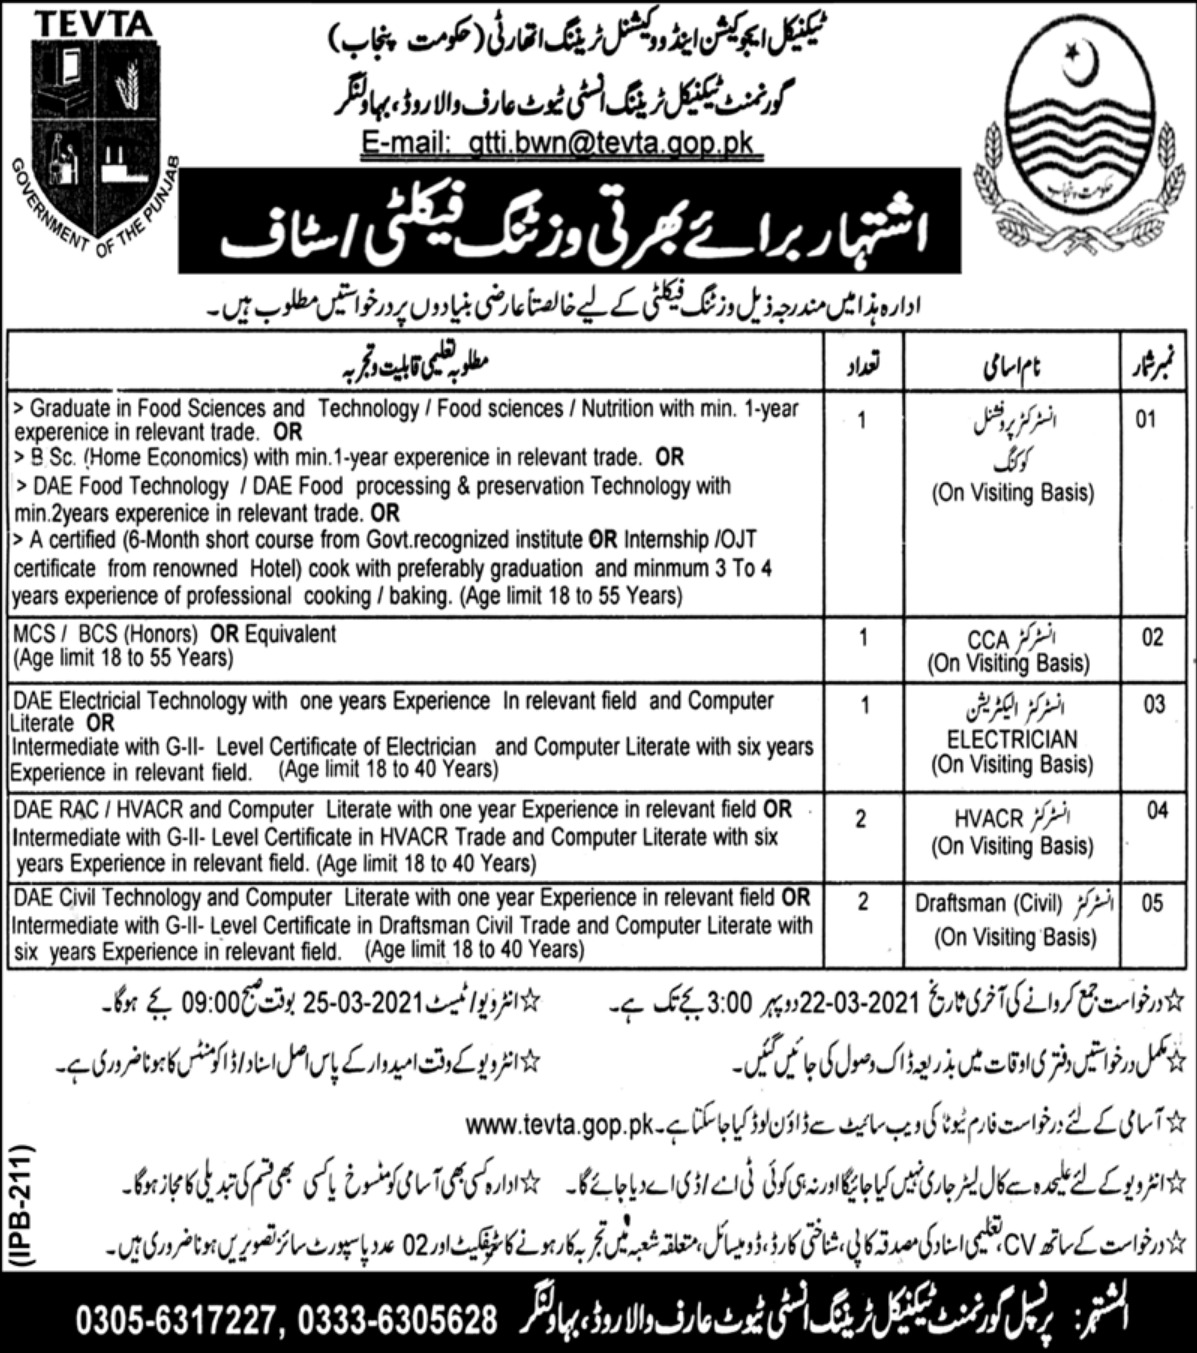 TEVTA Government of Punjab Jobs March 2021